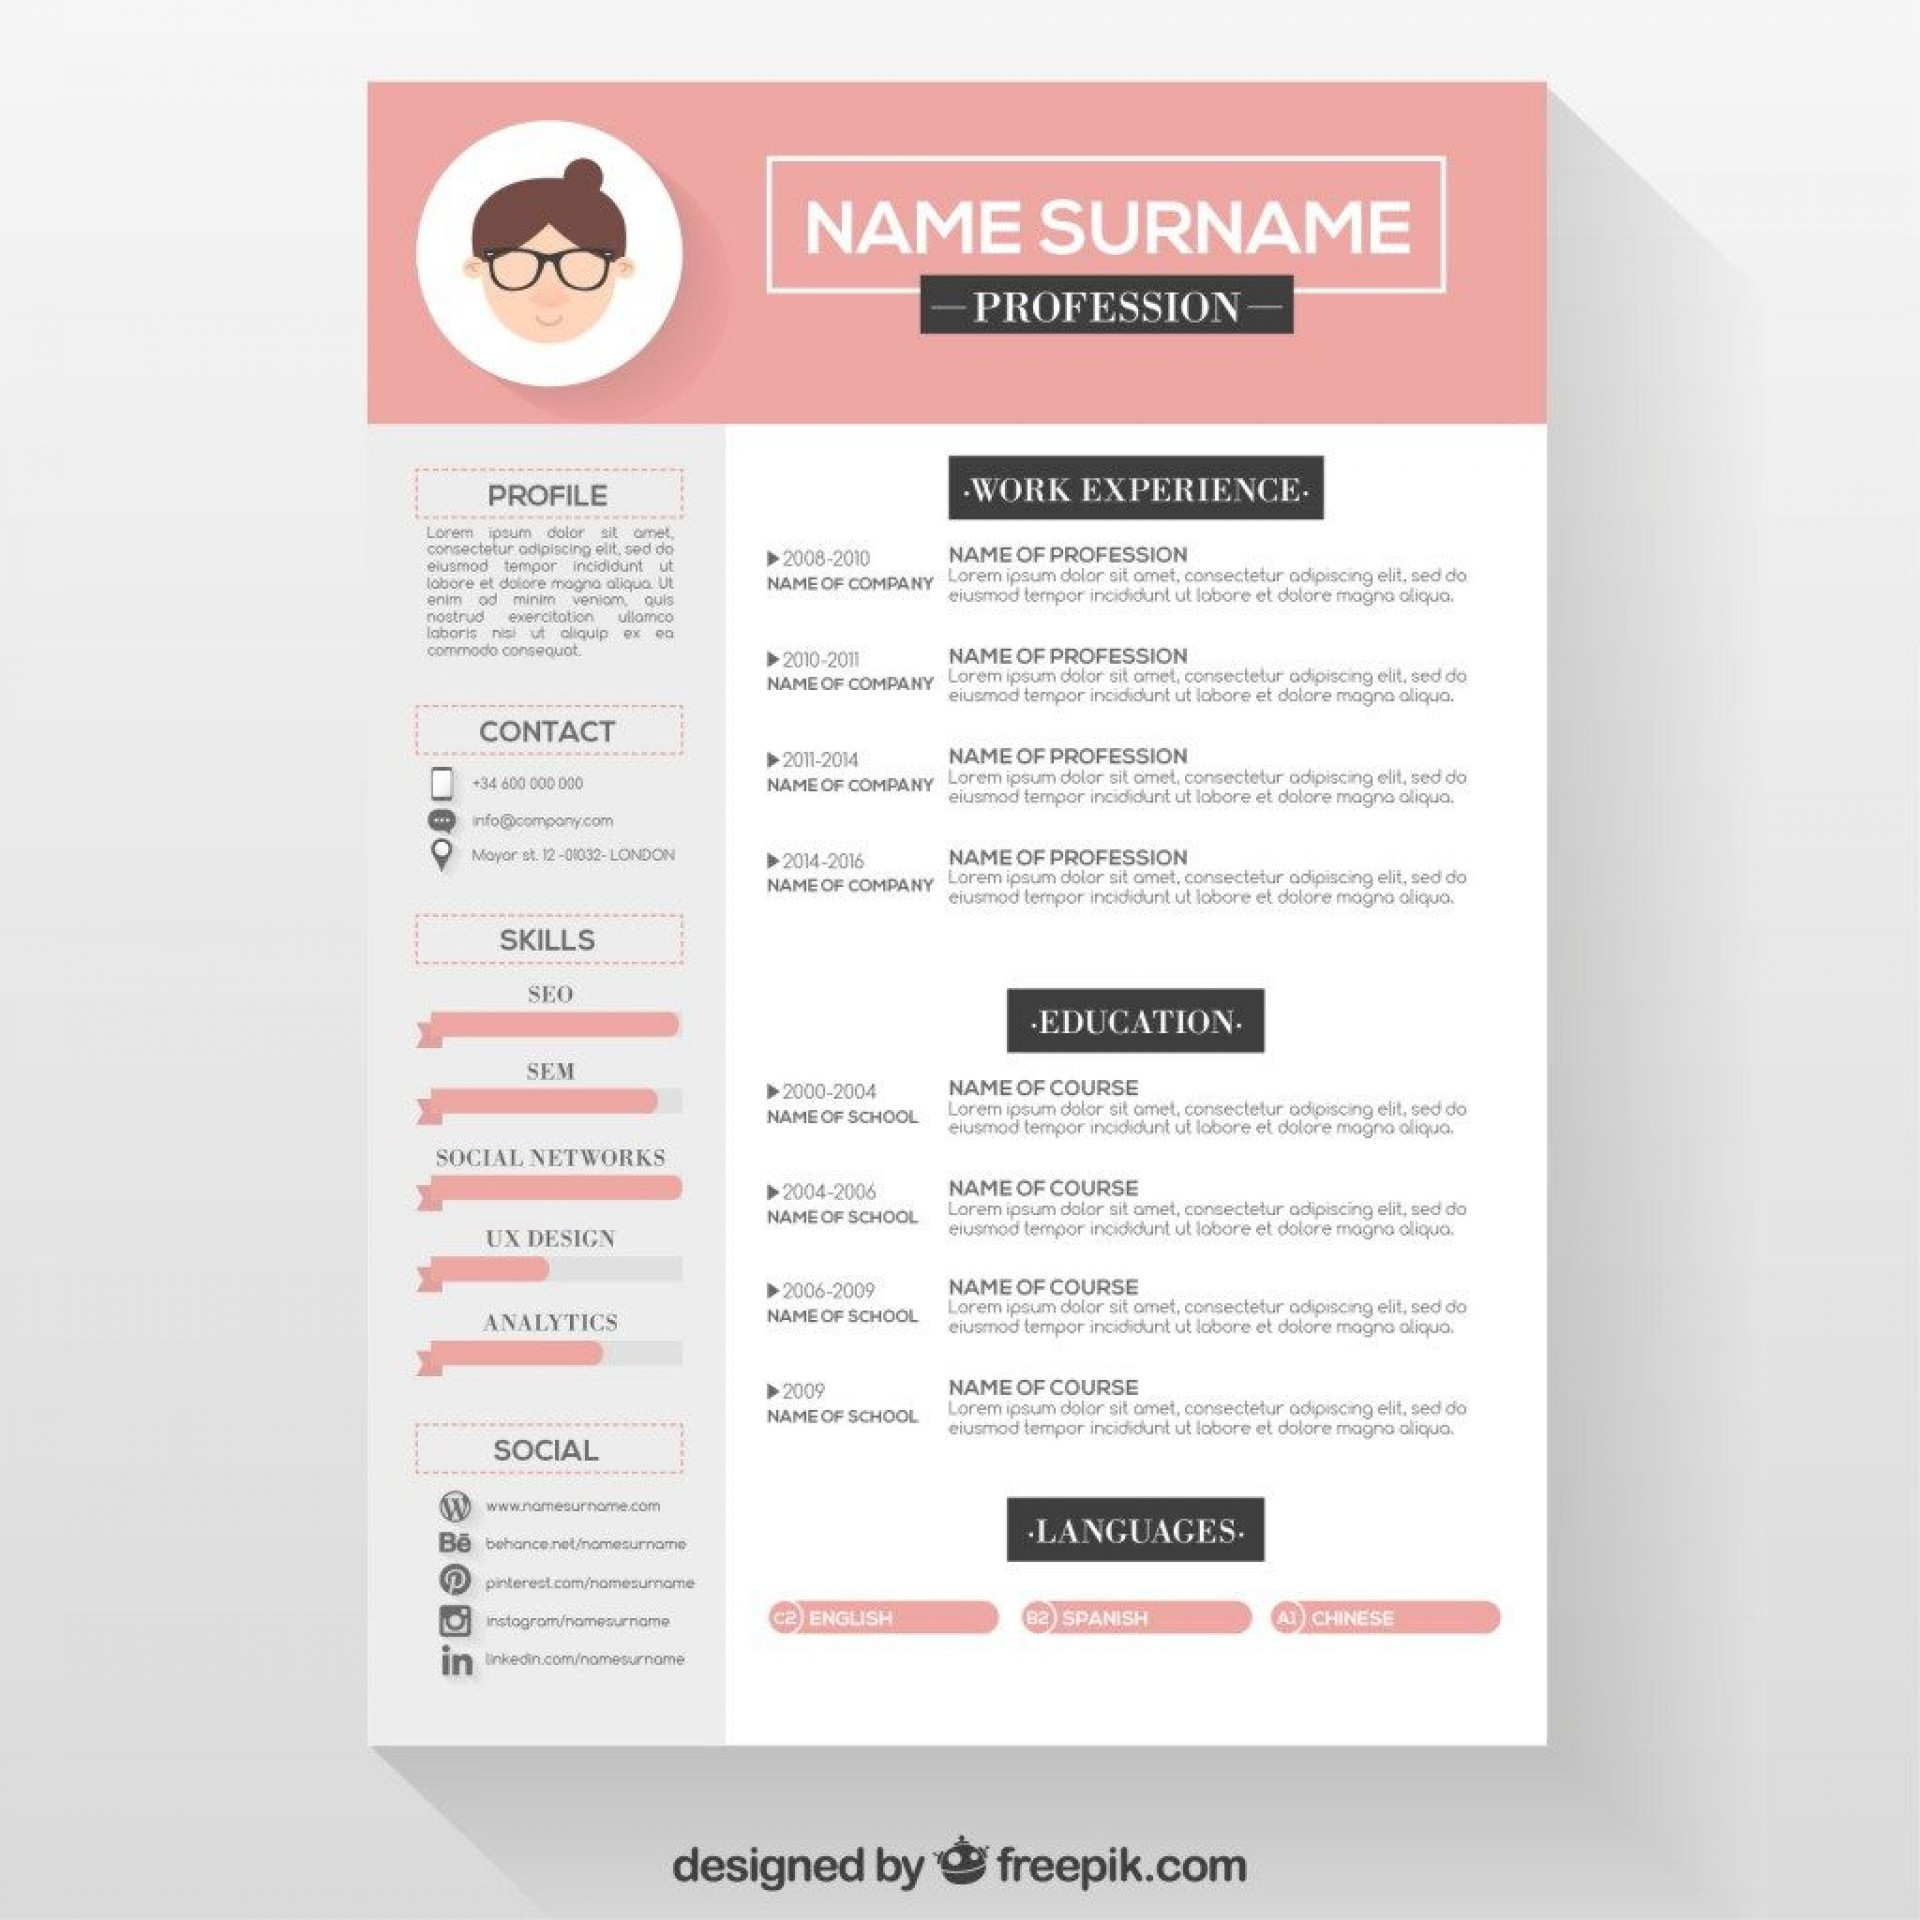 007 Fascinating Free Resume Template To Download Sample  Professional Format In M Word 2007 For Civil Engineer1920